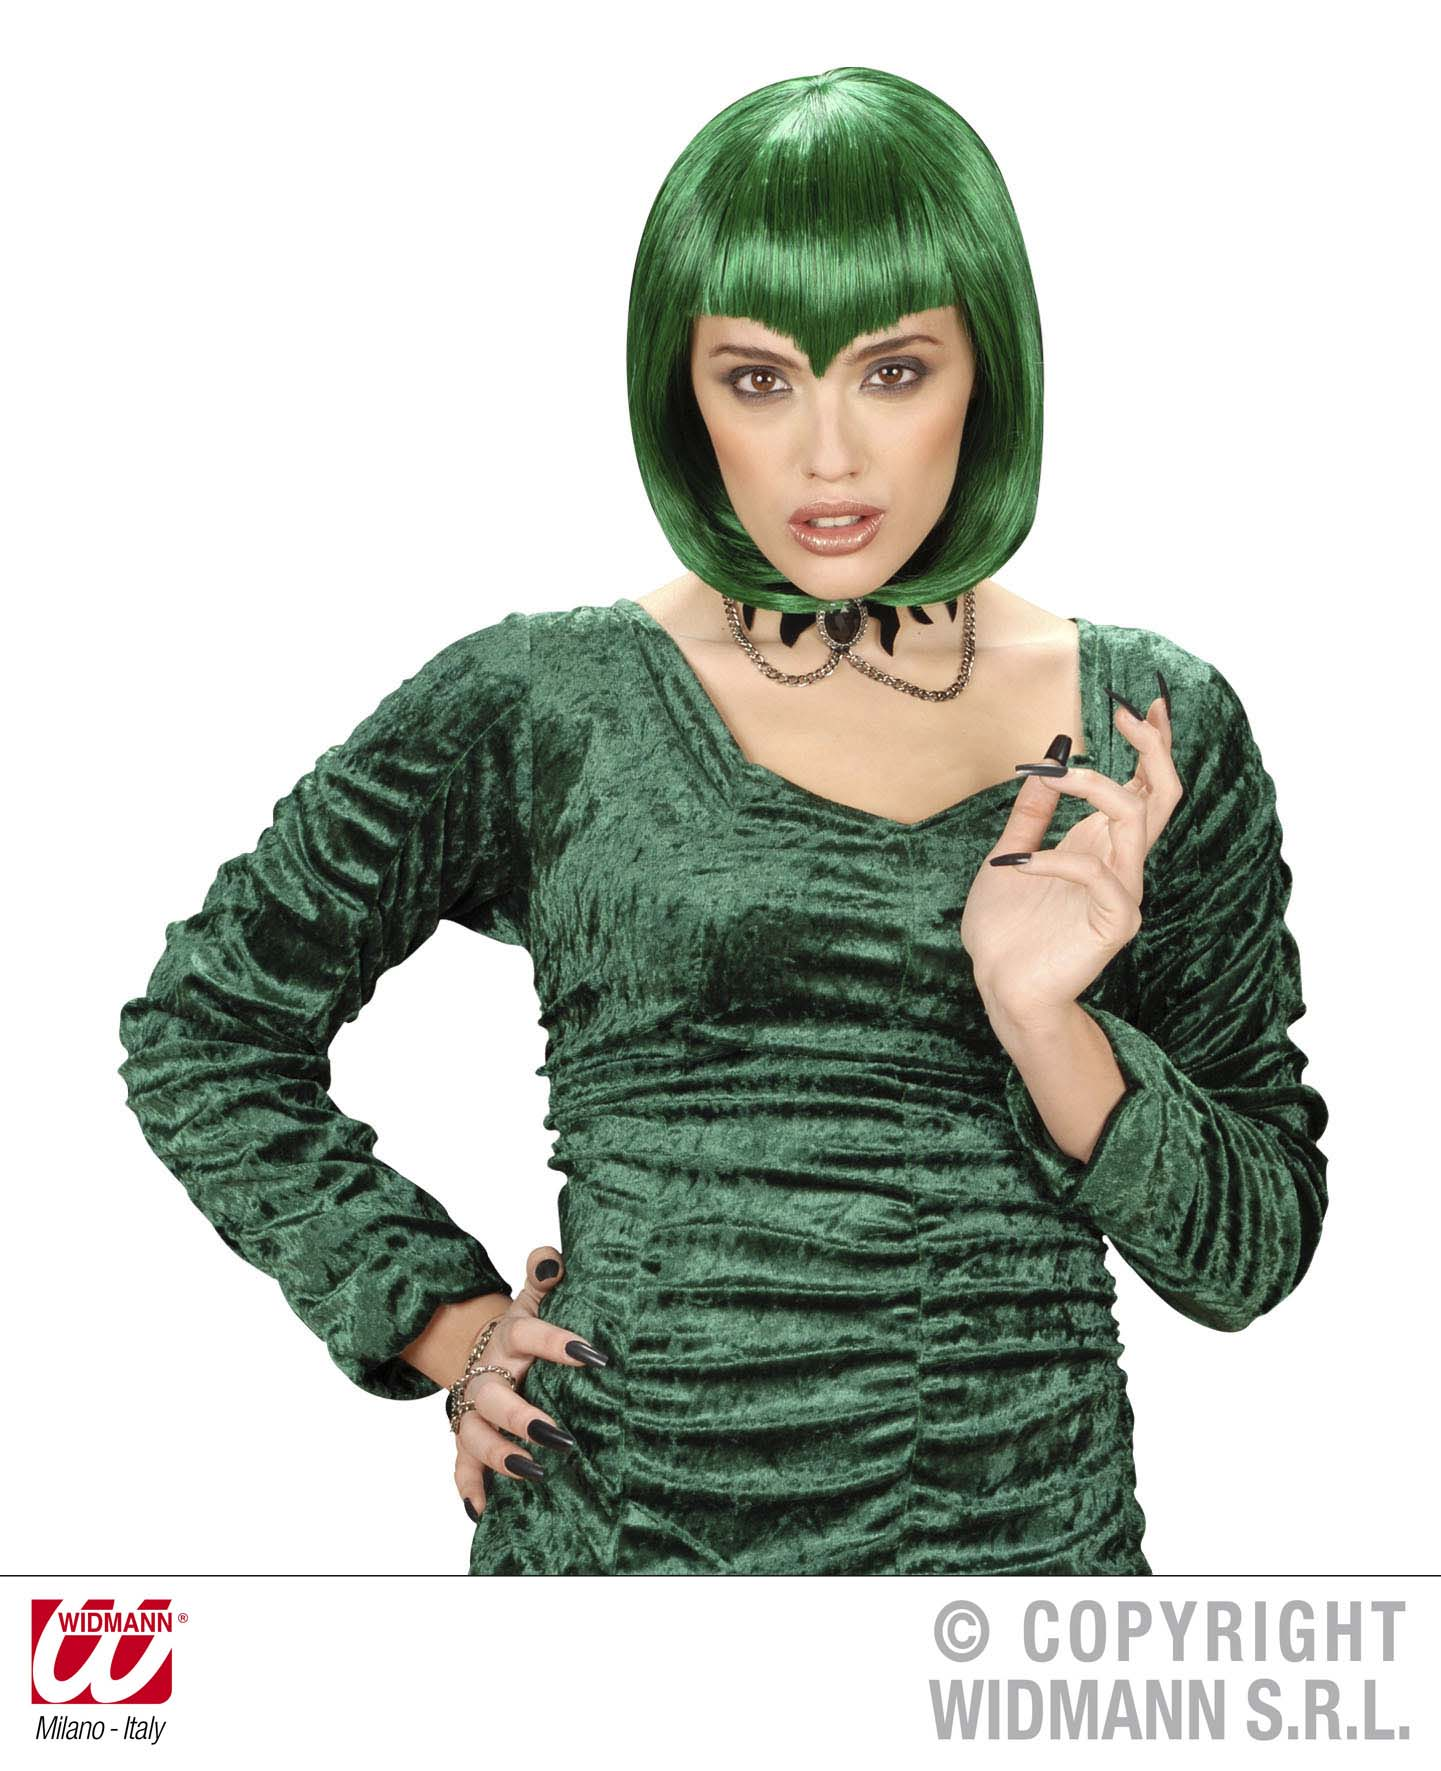 Green Pointy Fringe Wig Vampiress Gothic Emo Monster Halloween Fancy Dress